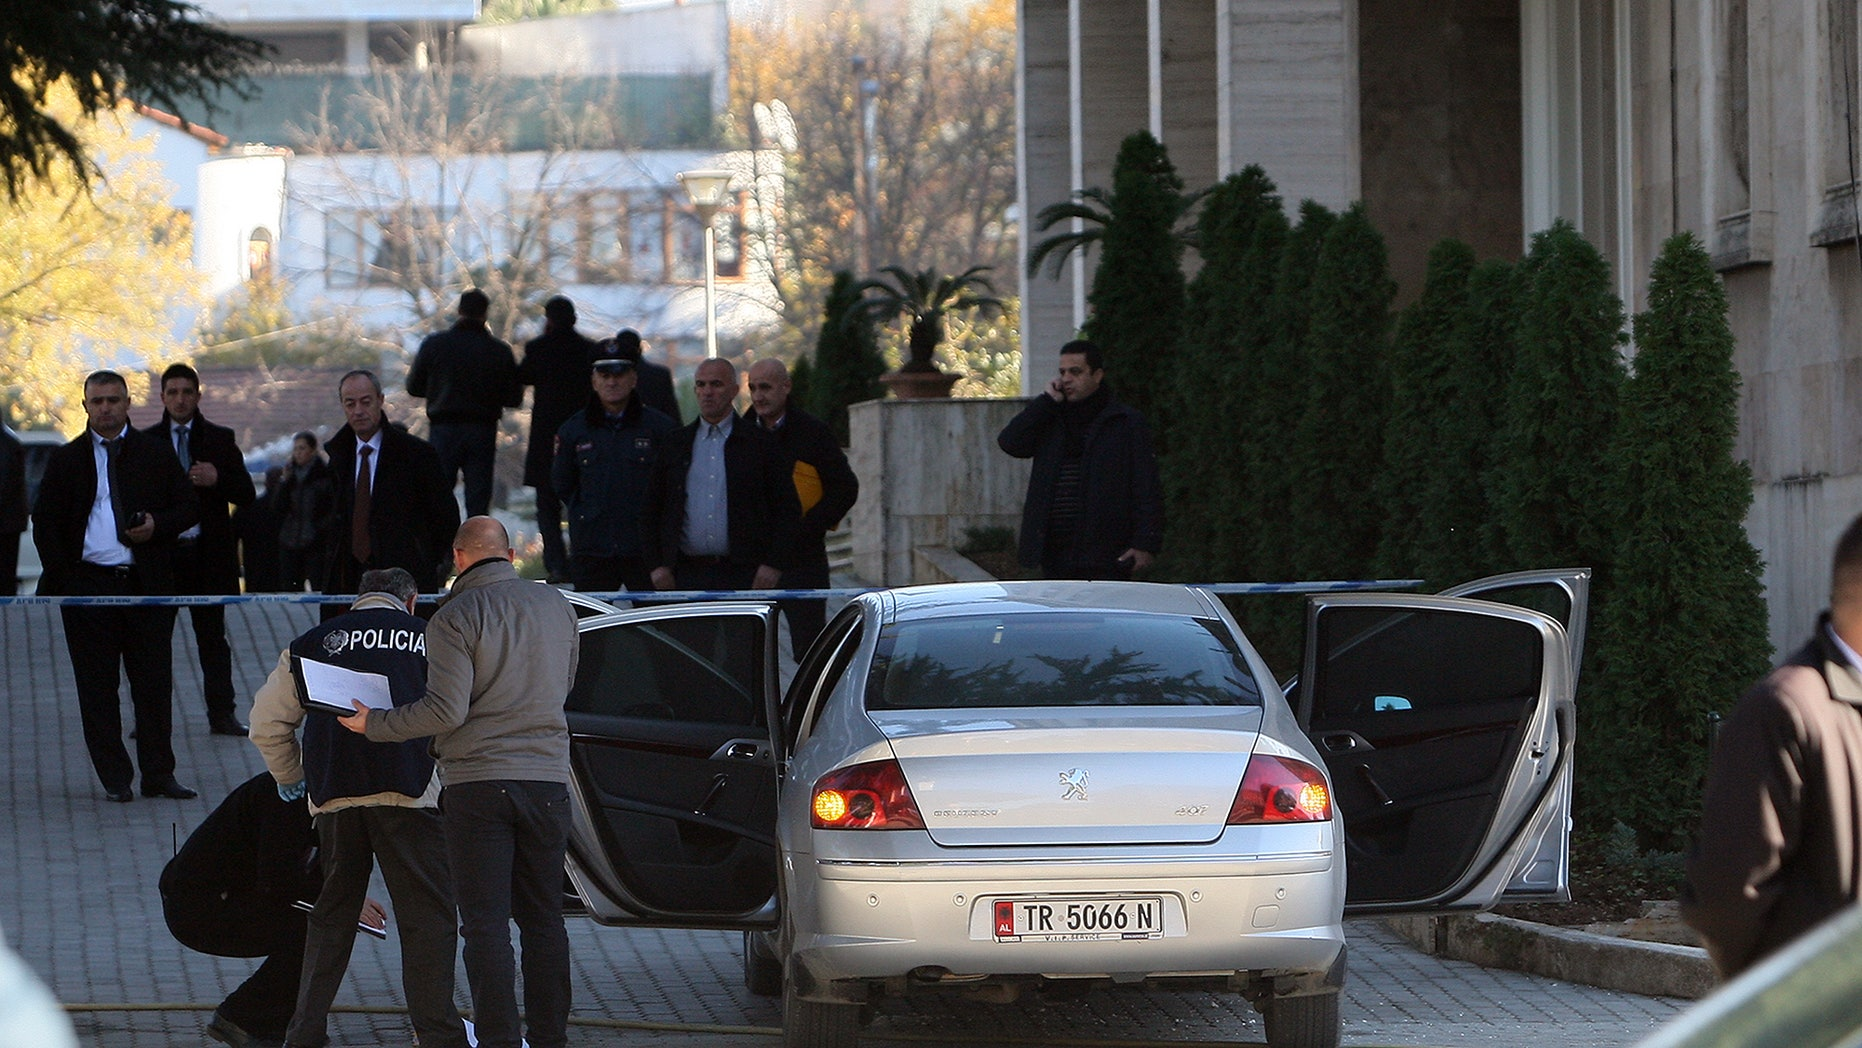 Police and officials inspect the car of Besnik Dervishi, a prefect, senior executive official of a southwestern district, in which police found 200 grams of C4 explosive, two detonators and a cell phone while entering the government's main building in capital Tirana Friday, Dec. 13, 2013.(AP Photo/Hektor Pustina)